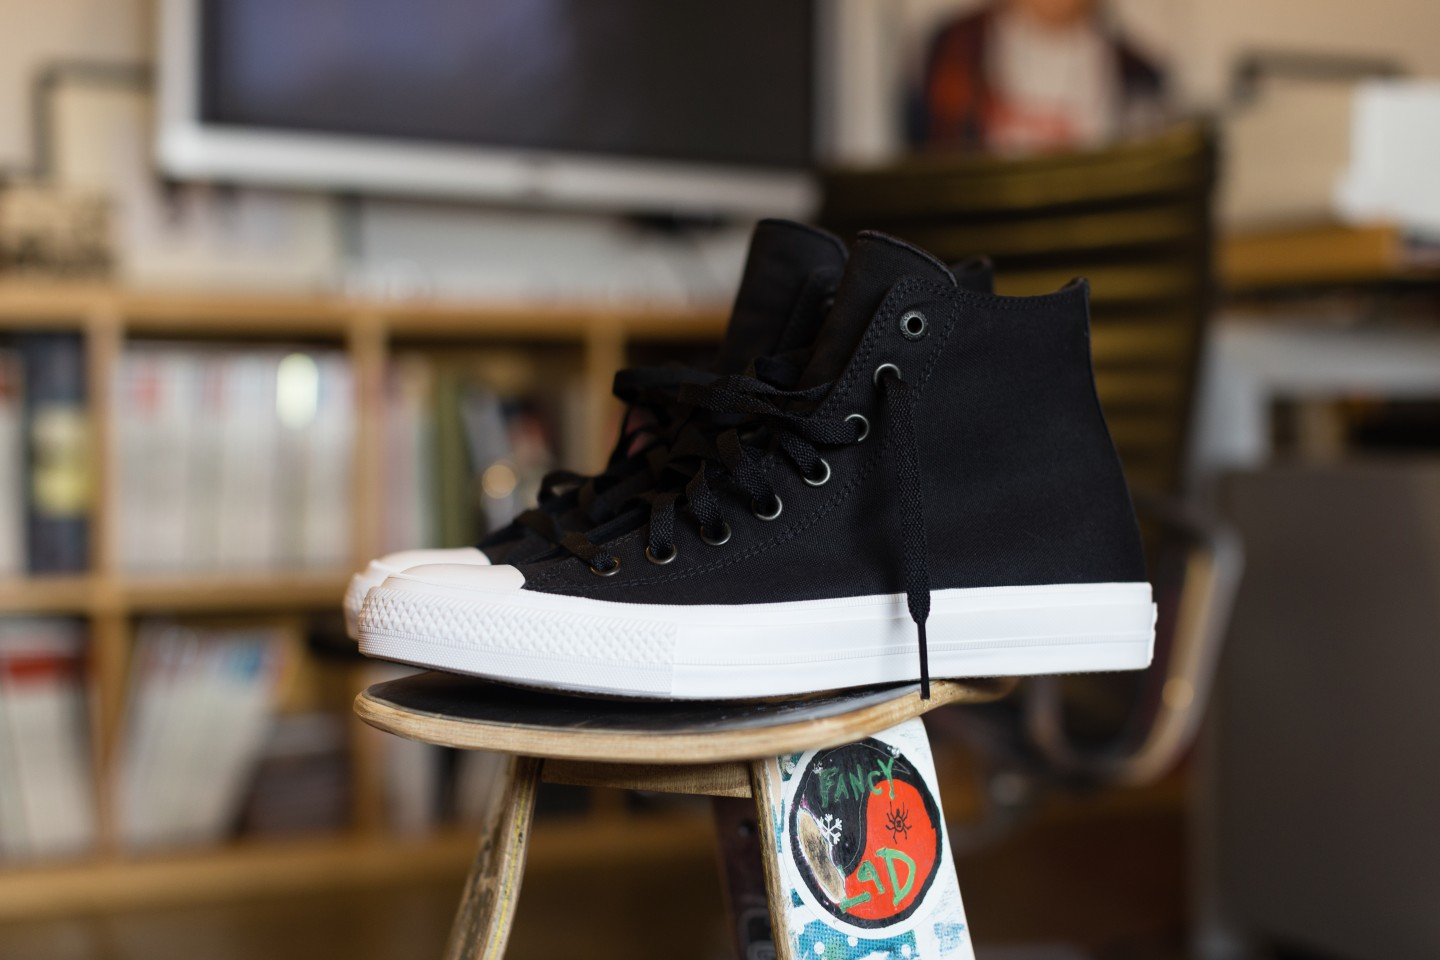 6683417a00a4 Converse Redesigned The Chuck Taylor For The First Time In A Century ...